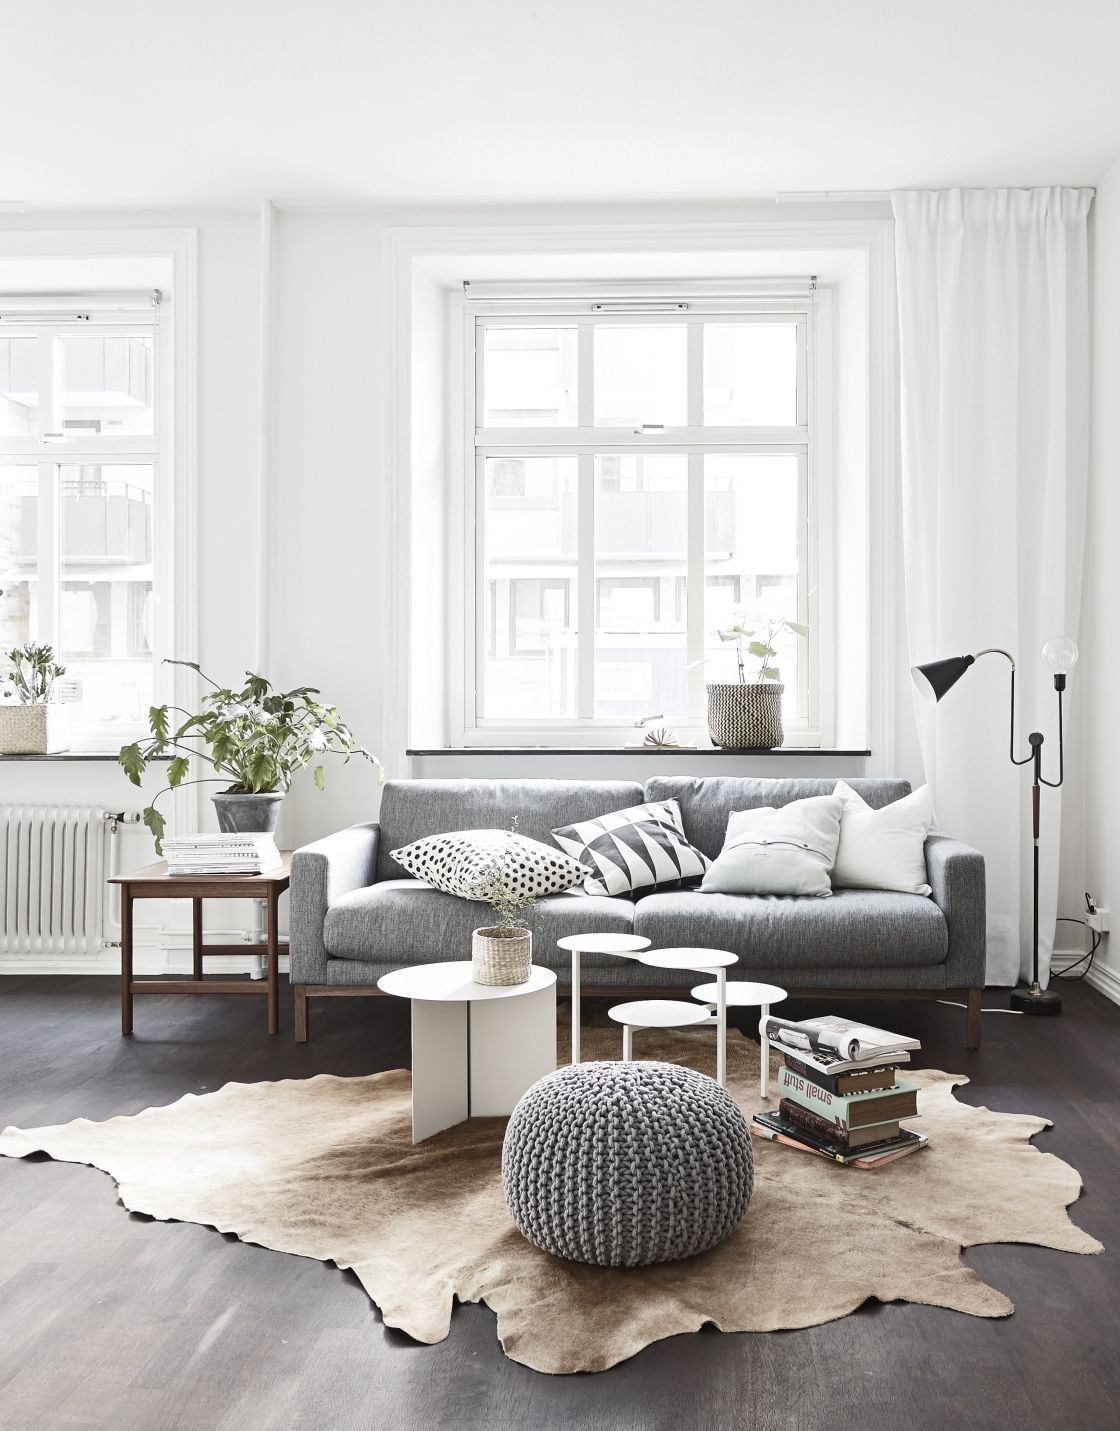 Soft Colors On A Dark Floor Coco Lapine Design Living Room Scandinavian Scandinavian Design Living Room Minimalist Living Room